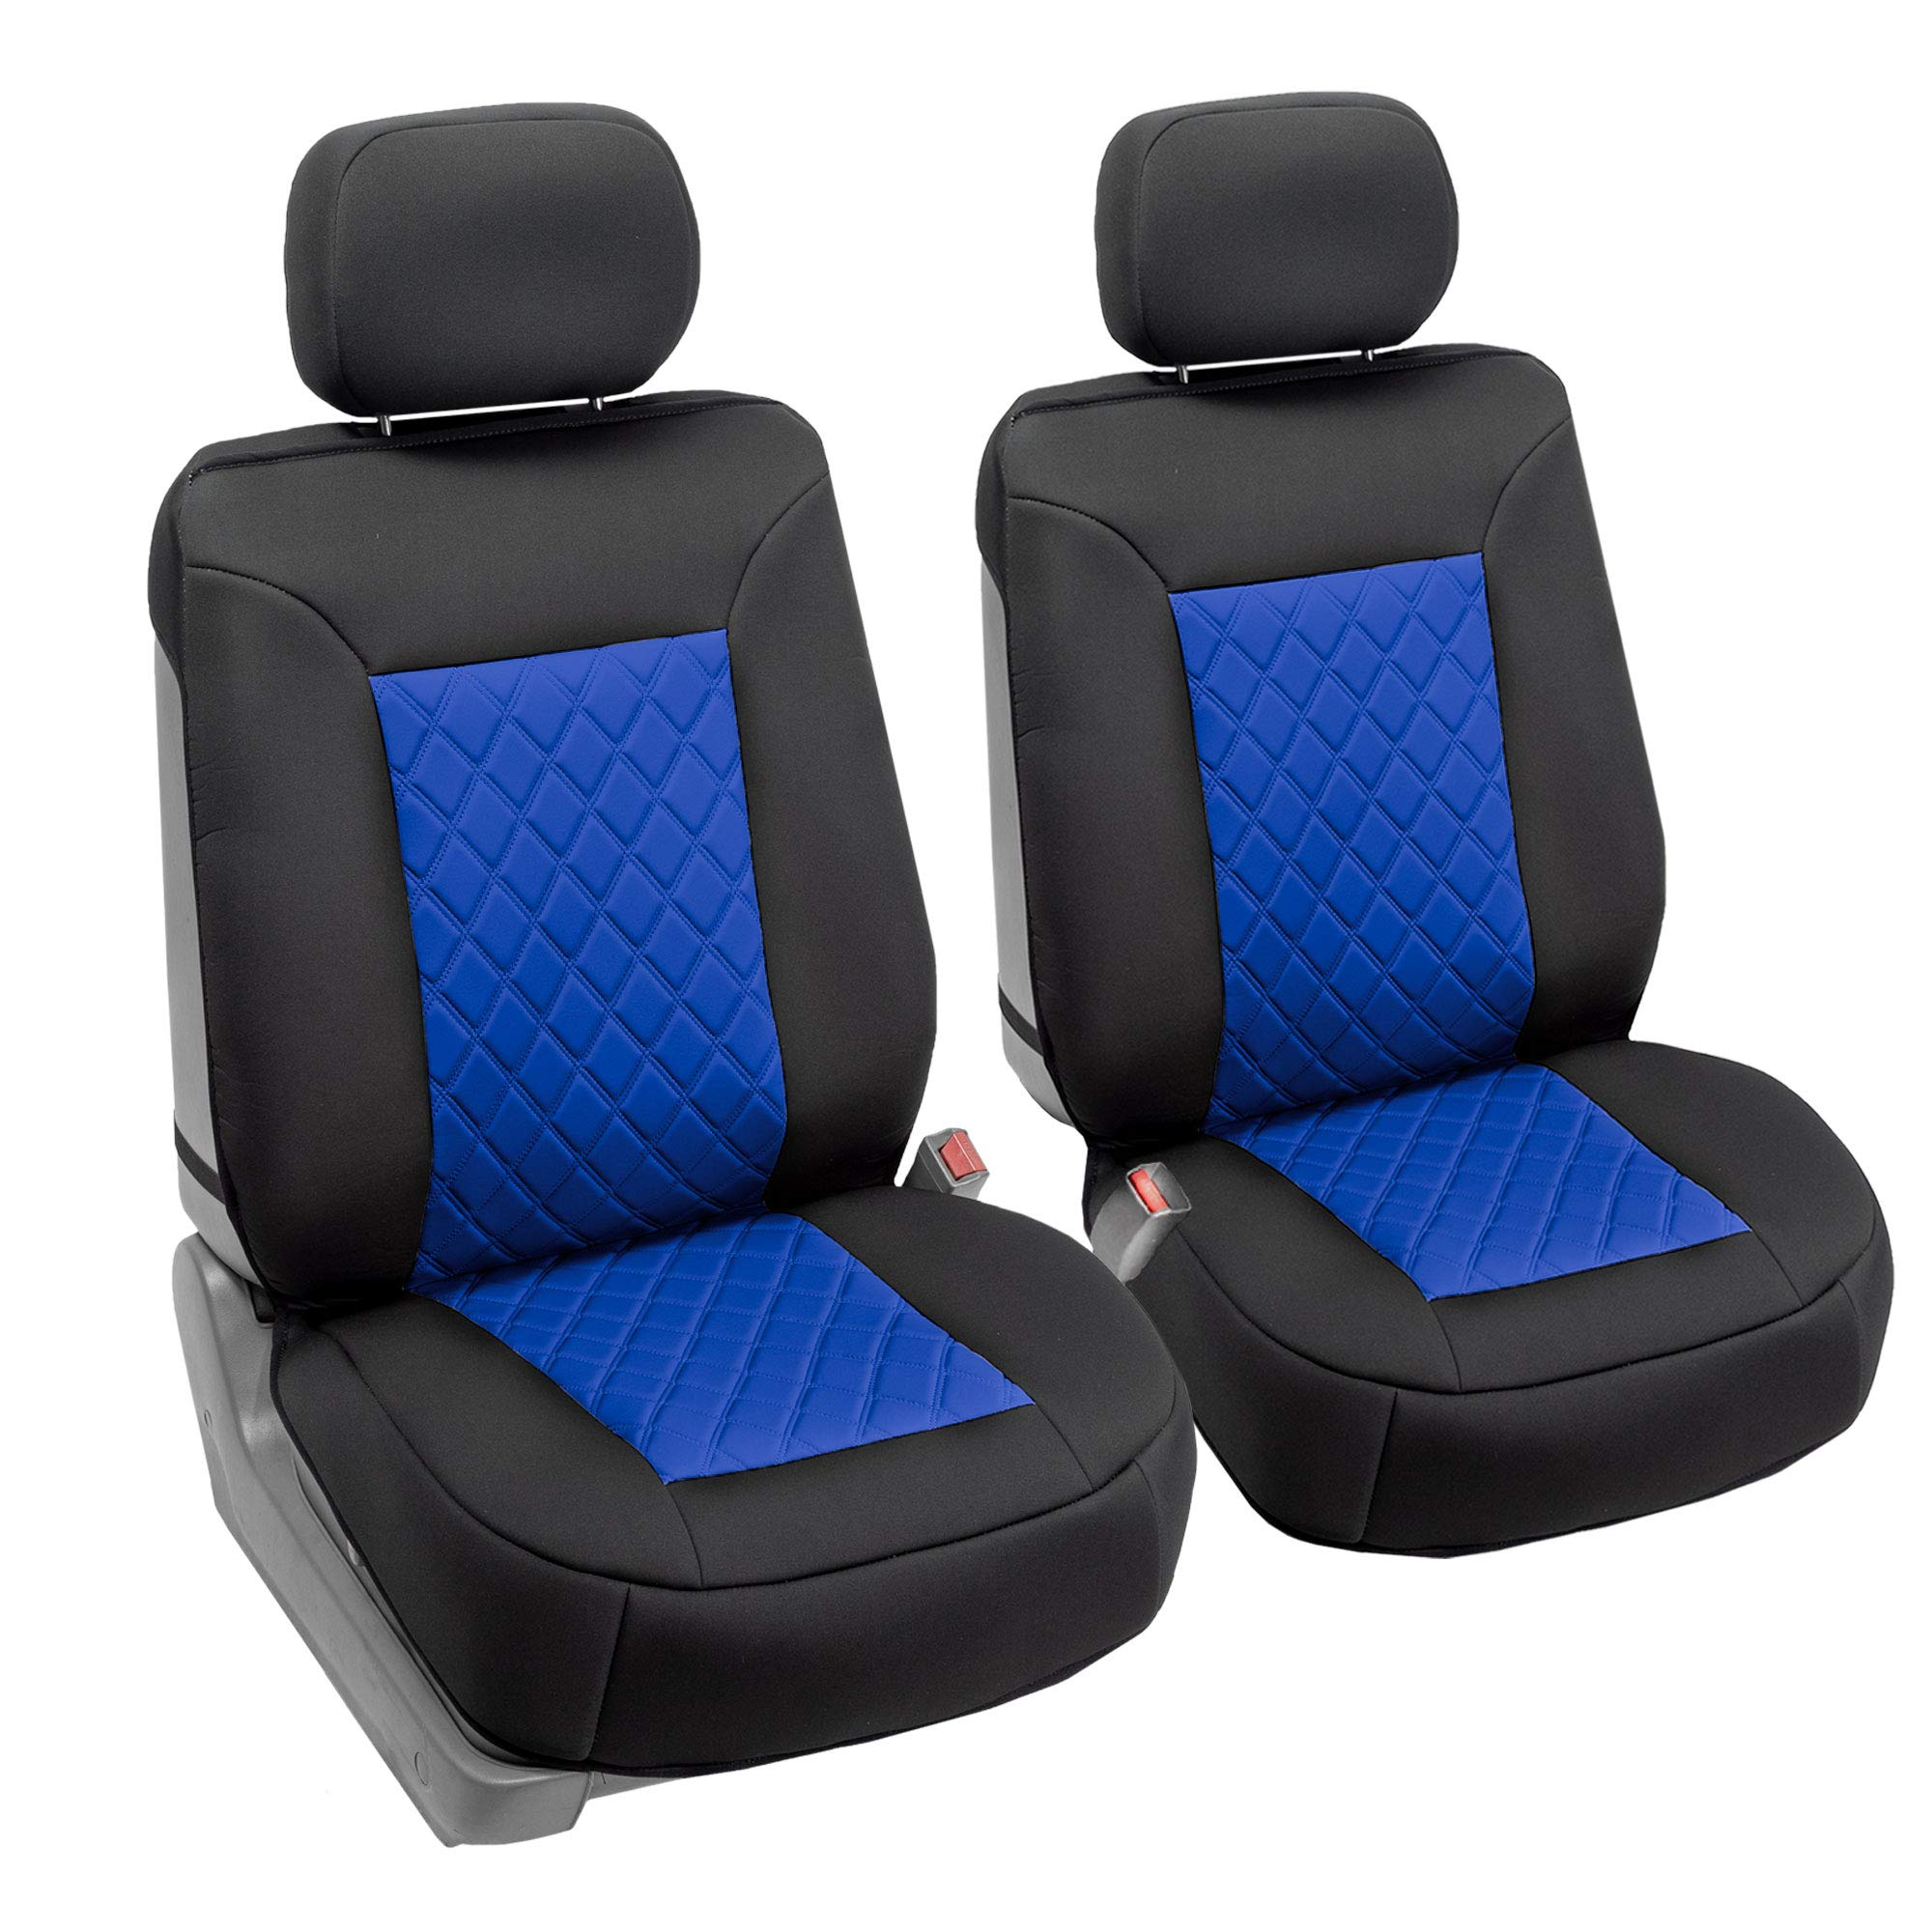 Blue Front Set with Gift FH Group FB088102 Neosupreme Deluxe Quality Car Seat Cushions Universal Fit for Cars Trucks and SUVs